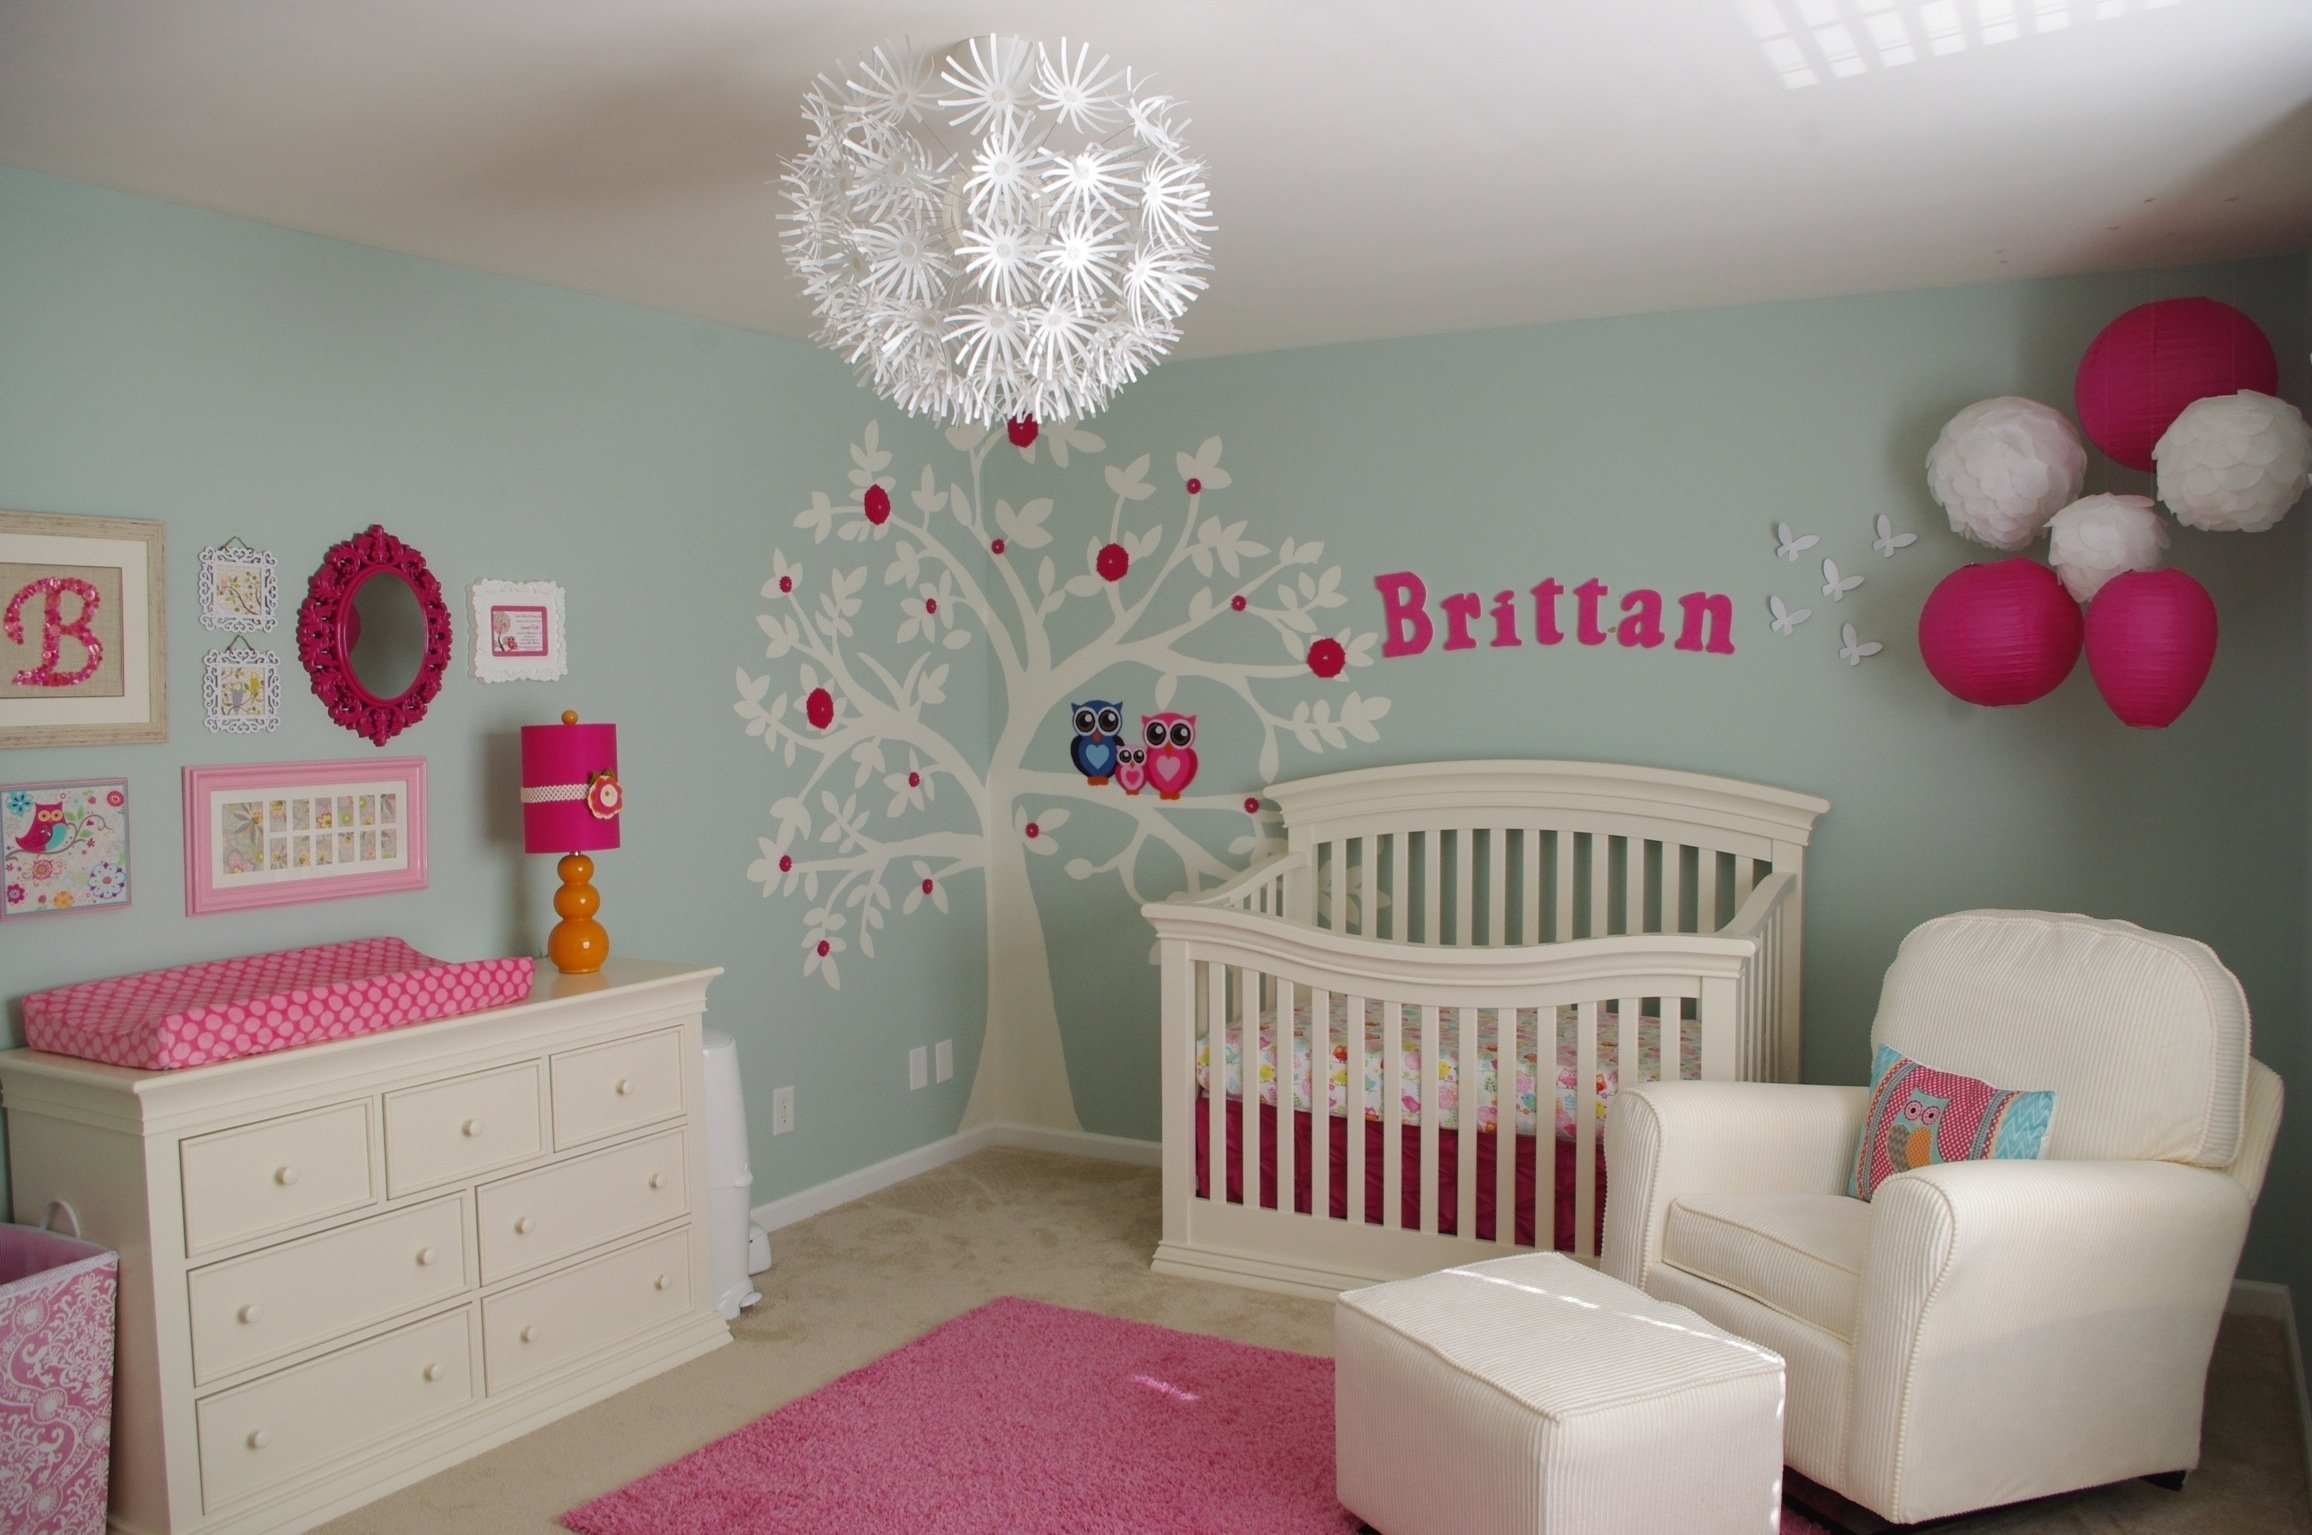 10 Great Little Girl Room Ideas Pinterest bedroom polliwogs pond baby girl room decorating ideas pinterest 2020